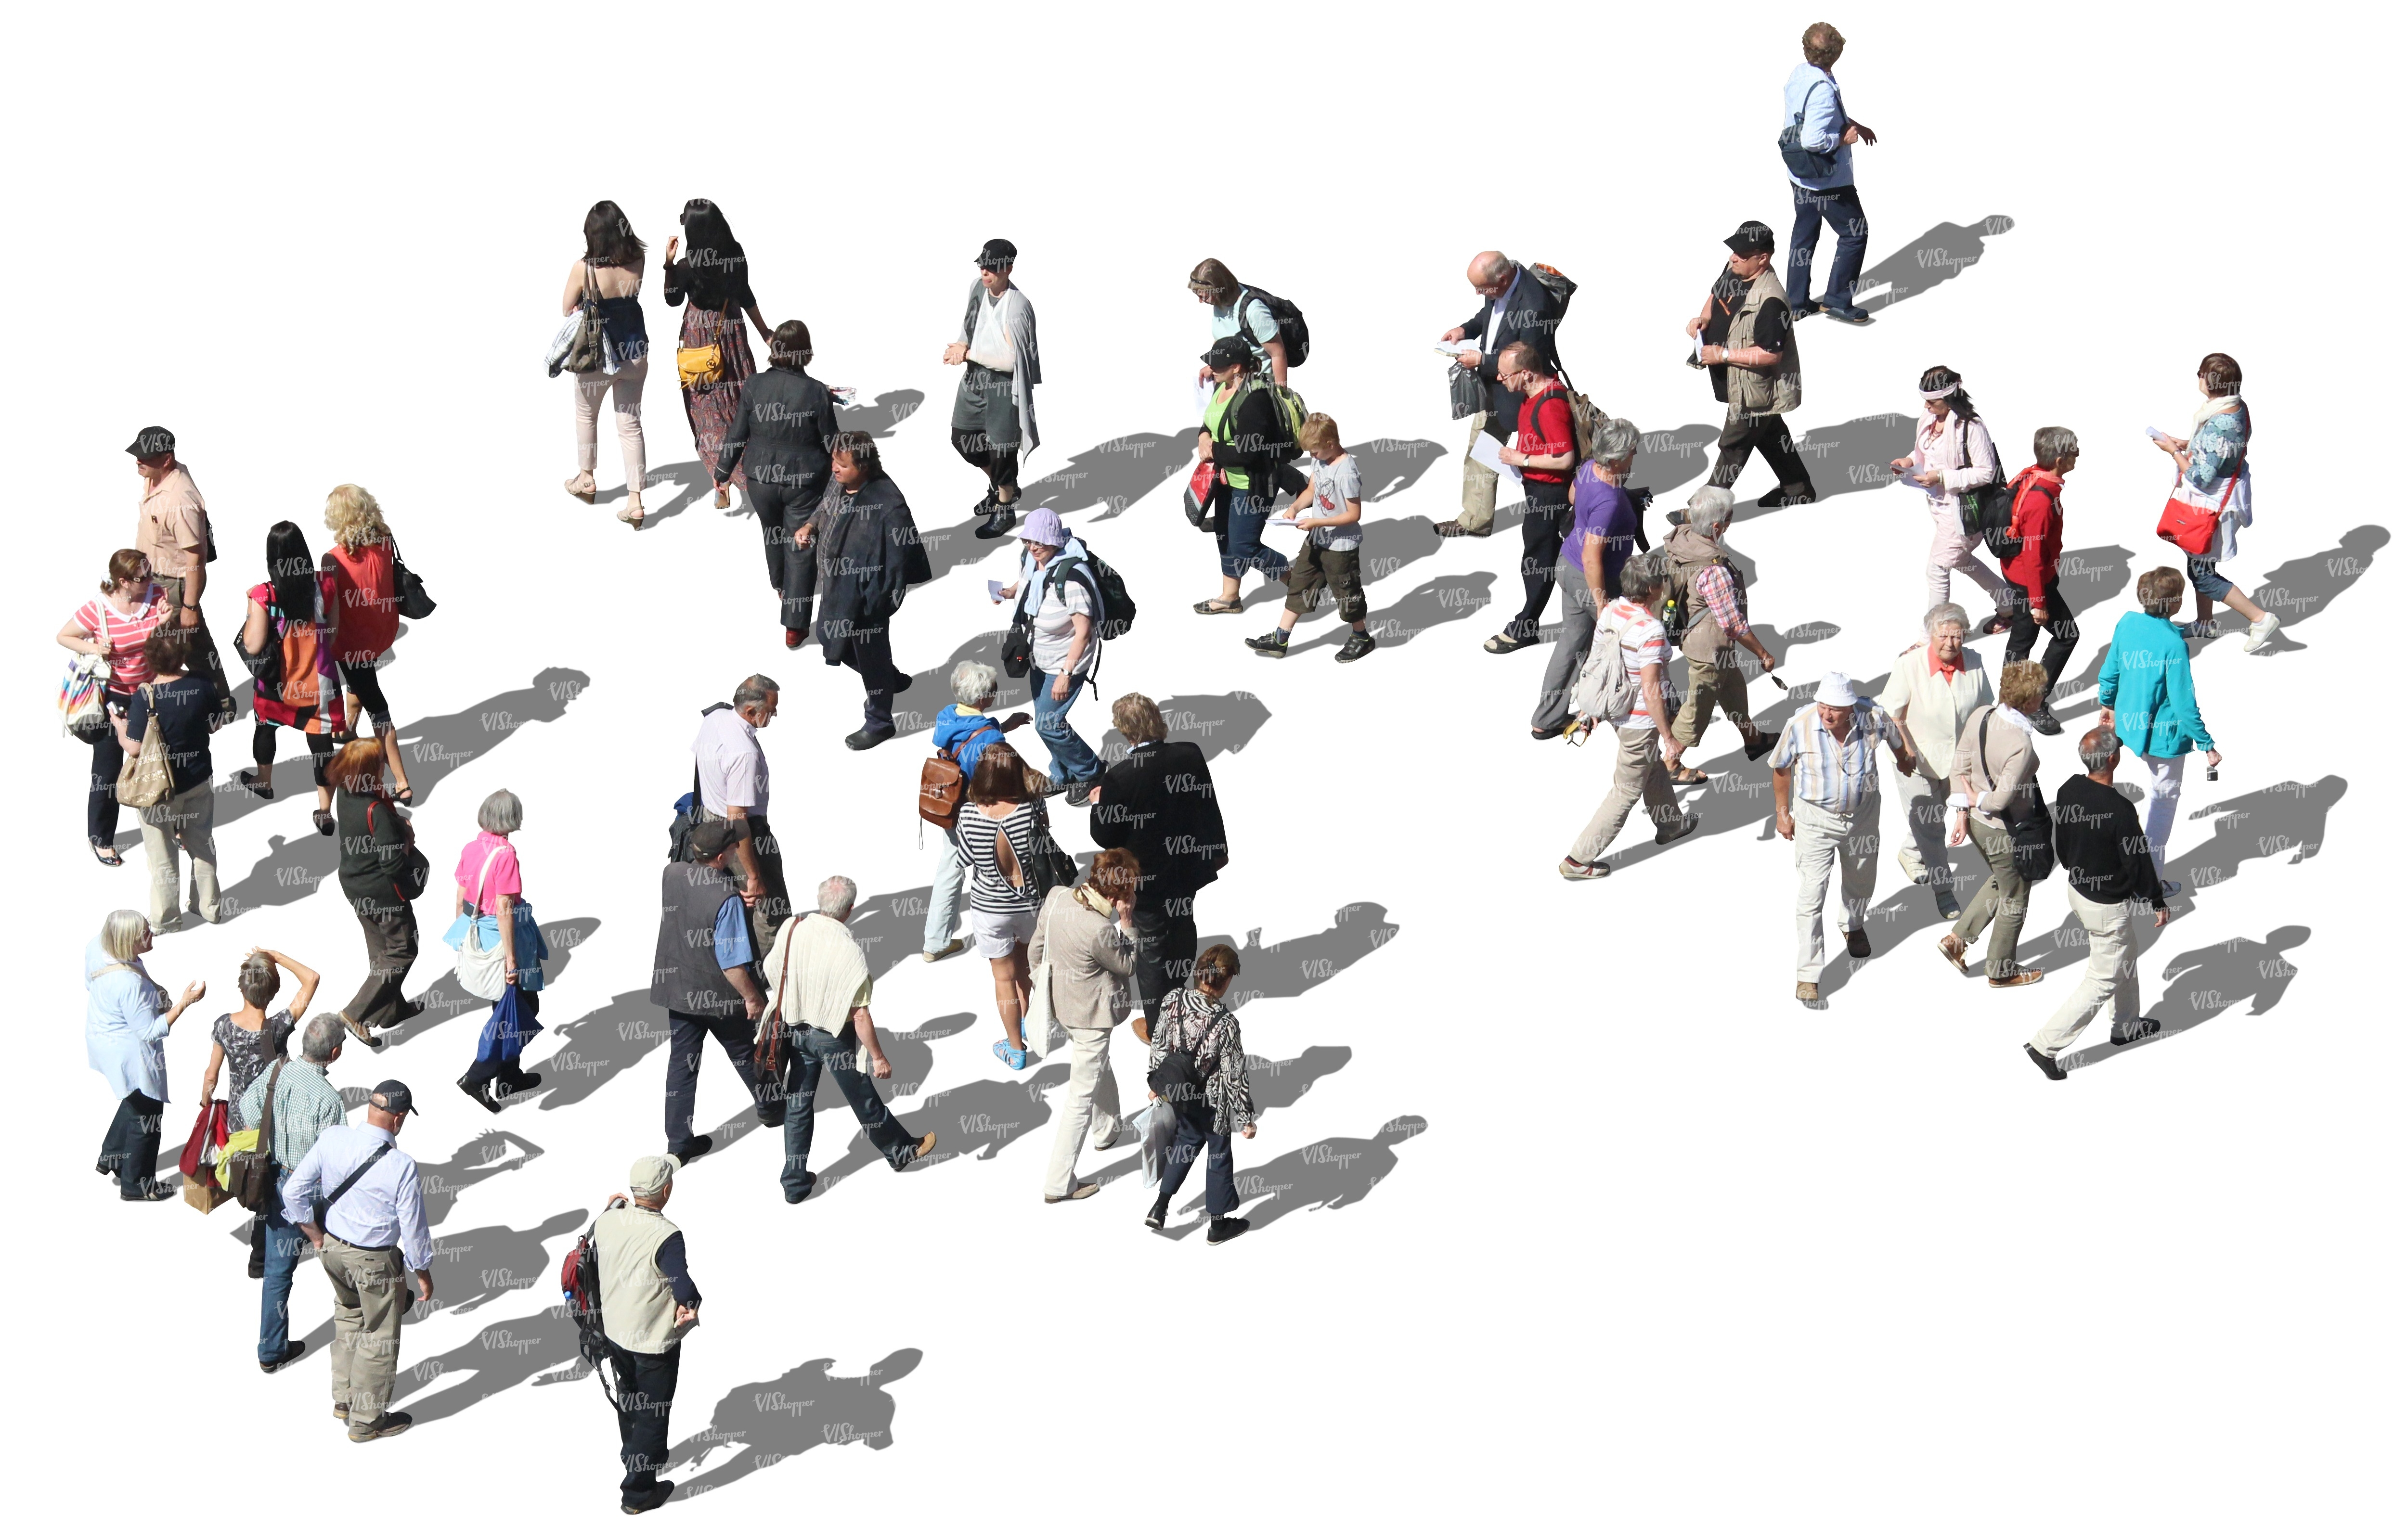 Excellent Ideas For Enhancing Your own personal Efforts Around Blogging 3580_crowd-of-people-seen-from-above